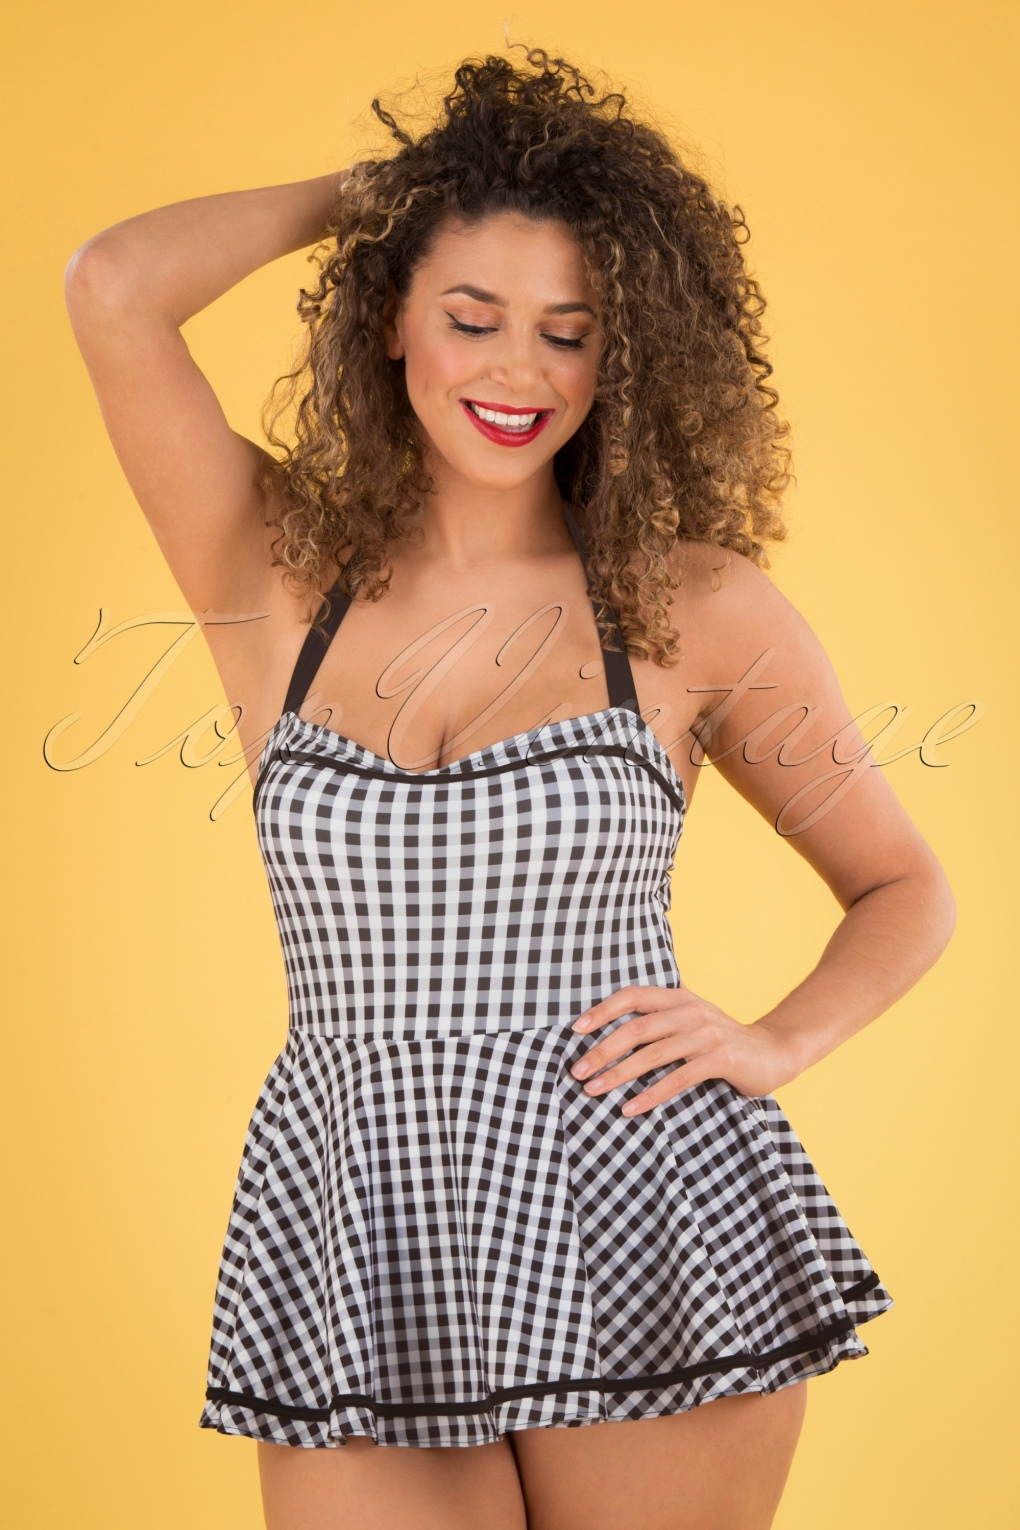 Vintage Bathing Suits | Retro Swimwear | Vintage Swimsuits 50s Gigi Gingham Swimdress in Black and White £44.93 AT vintagedancer.com